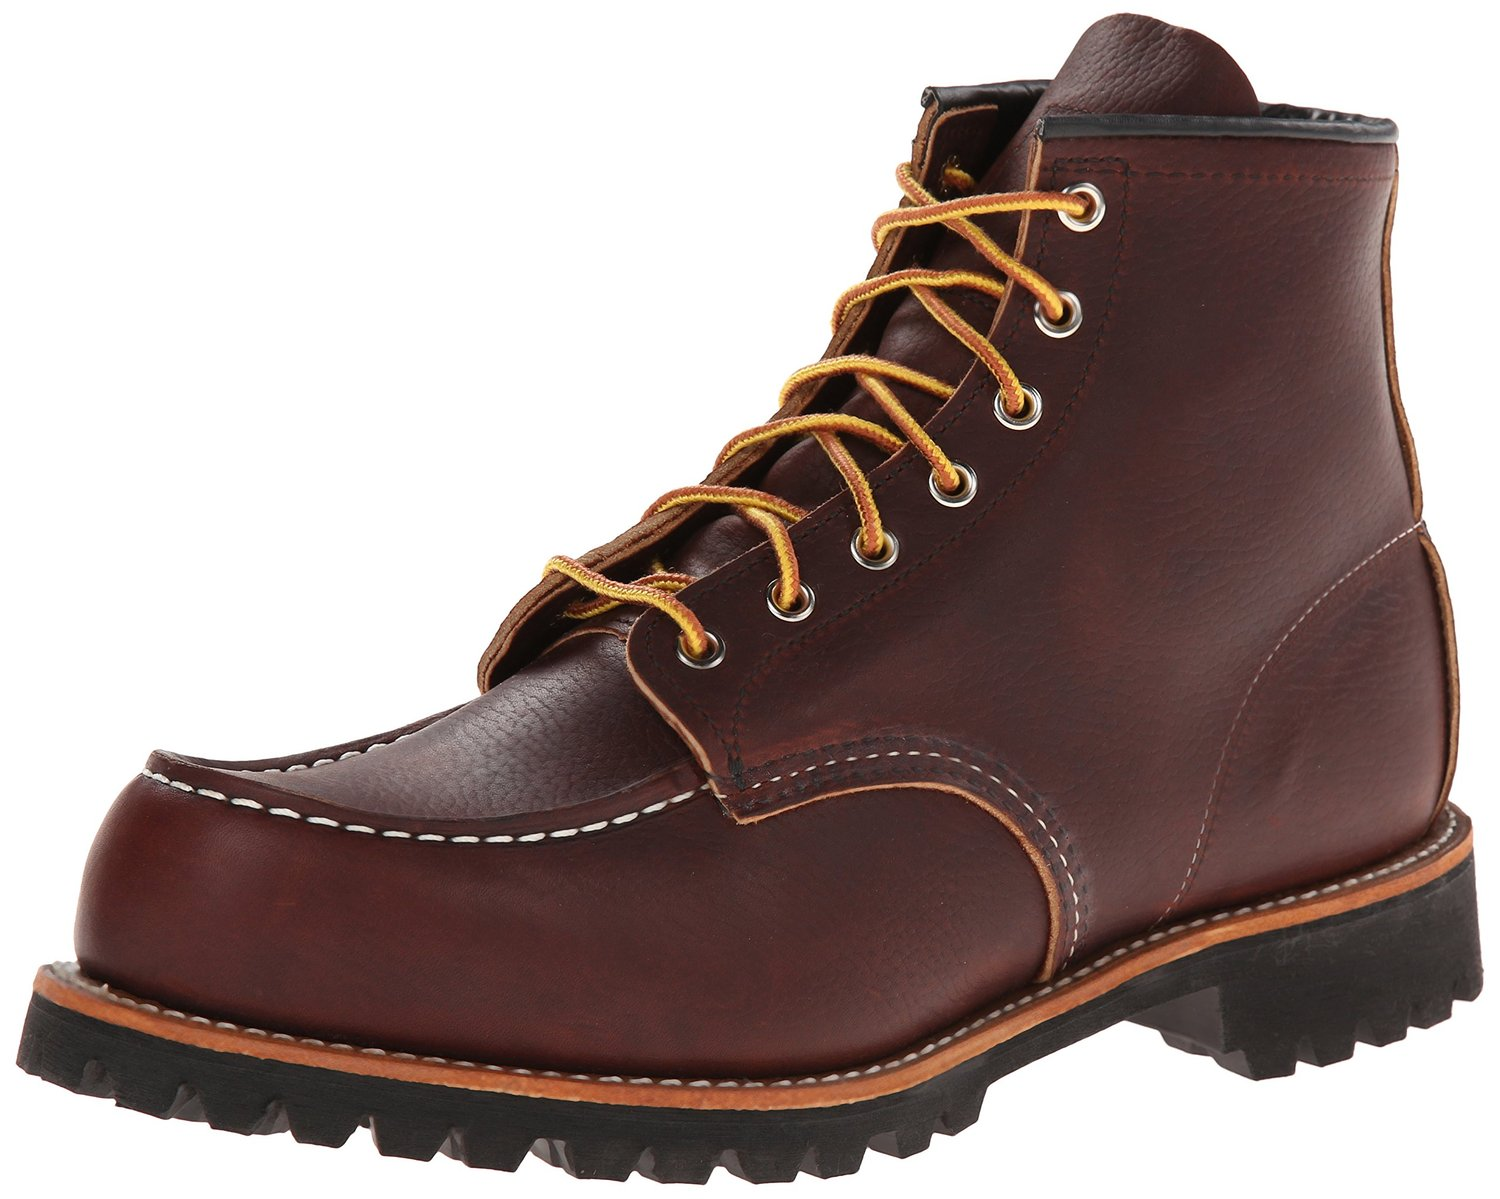 Red Wing Lace Up Boots aJtSPvSi